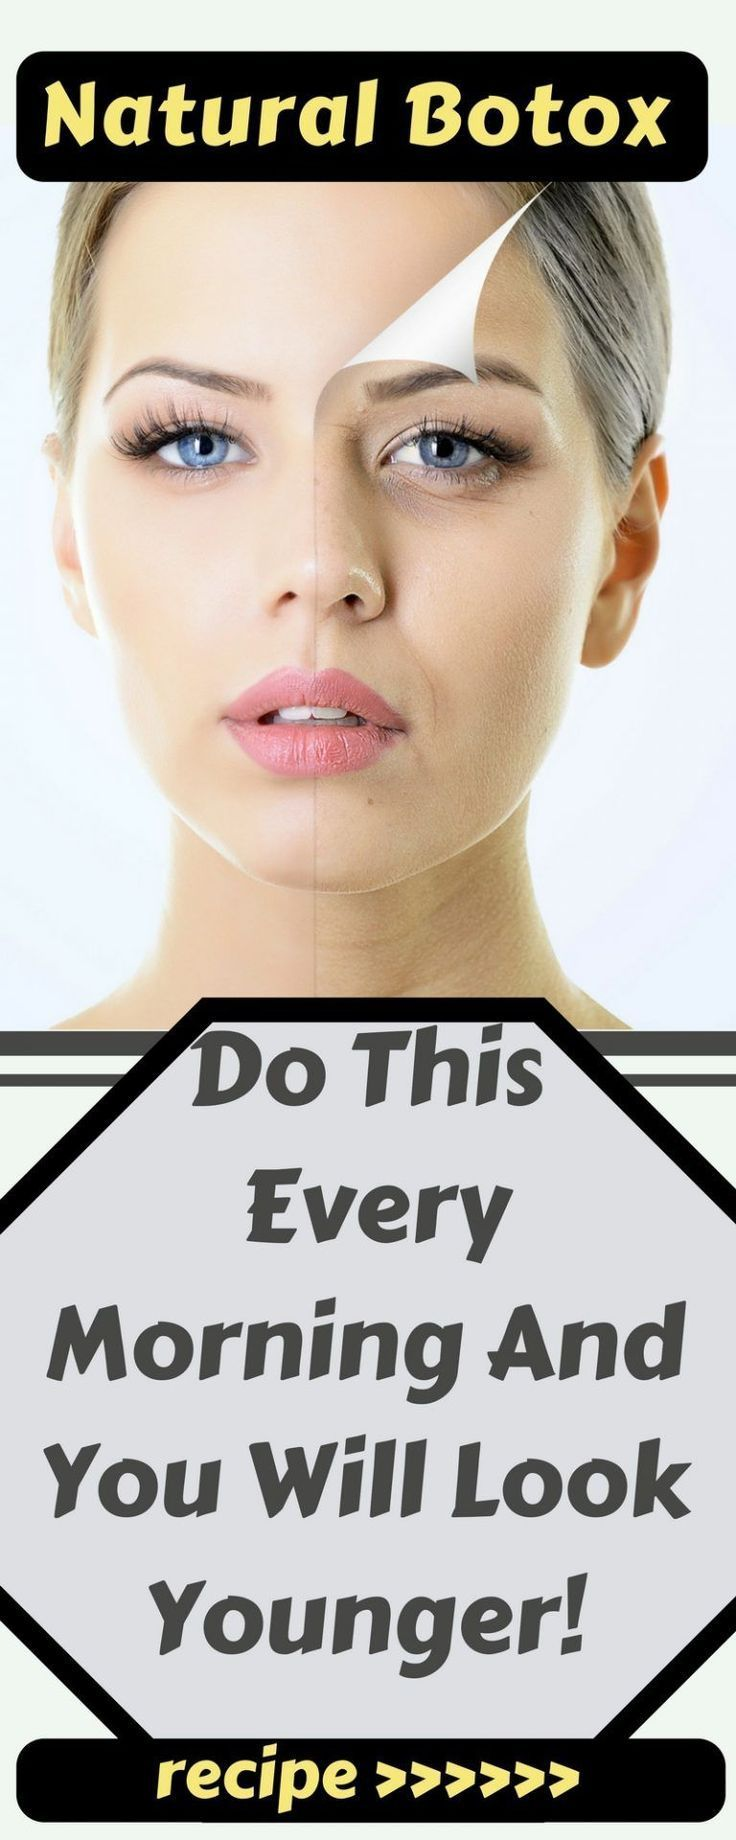 Natural Botox! Do This Every Morning And You Will Look Younger! – Time To Live Amazing - Botox! Do This Every Morning And You Will Look Younger! – Time To Live Amazing  -